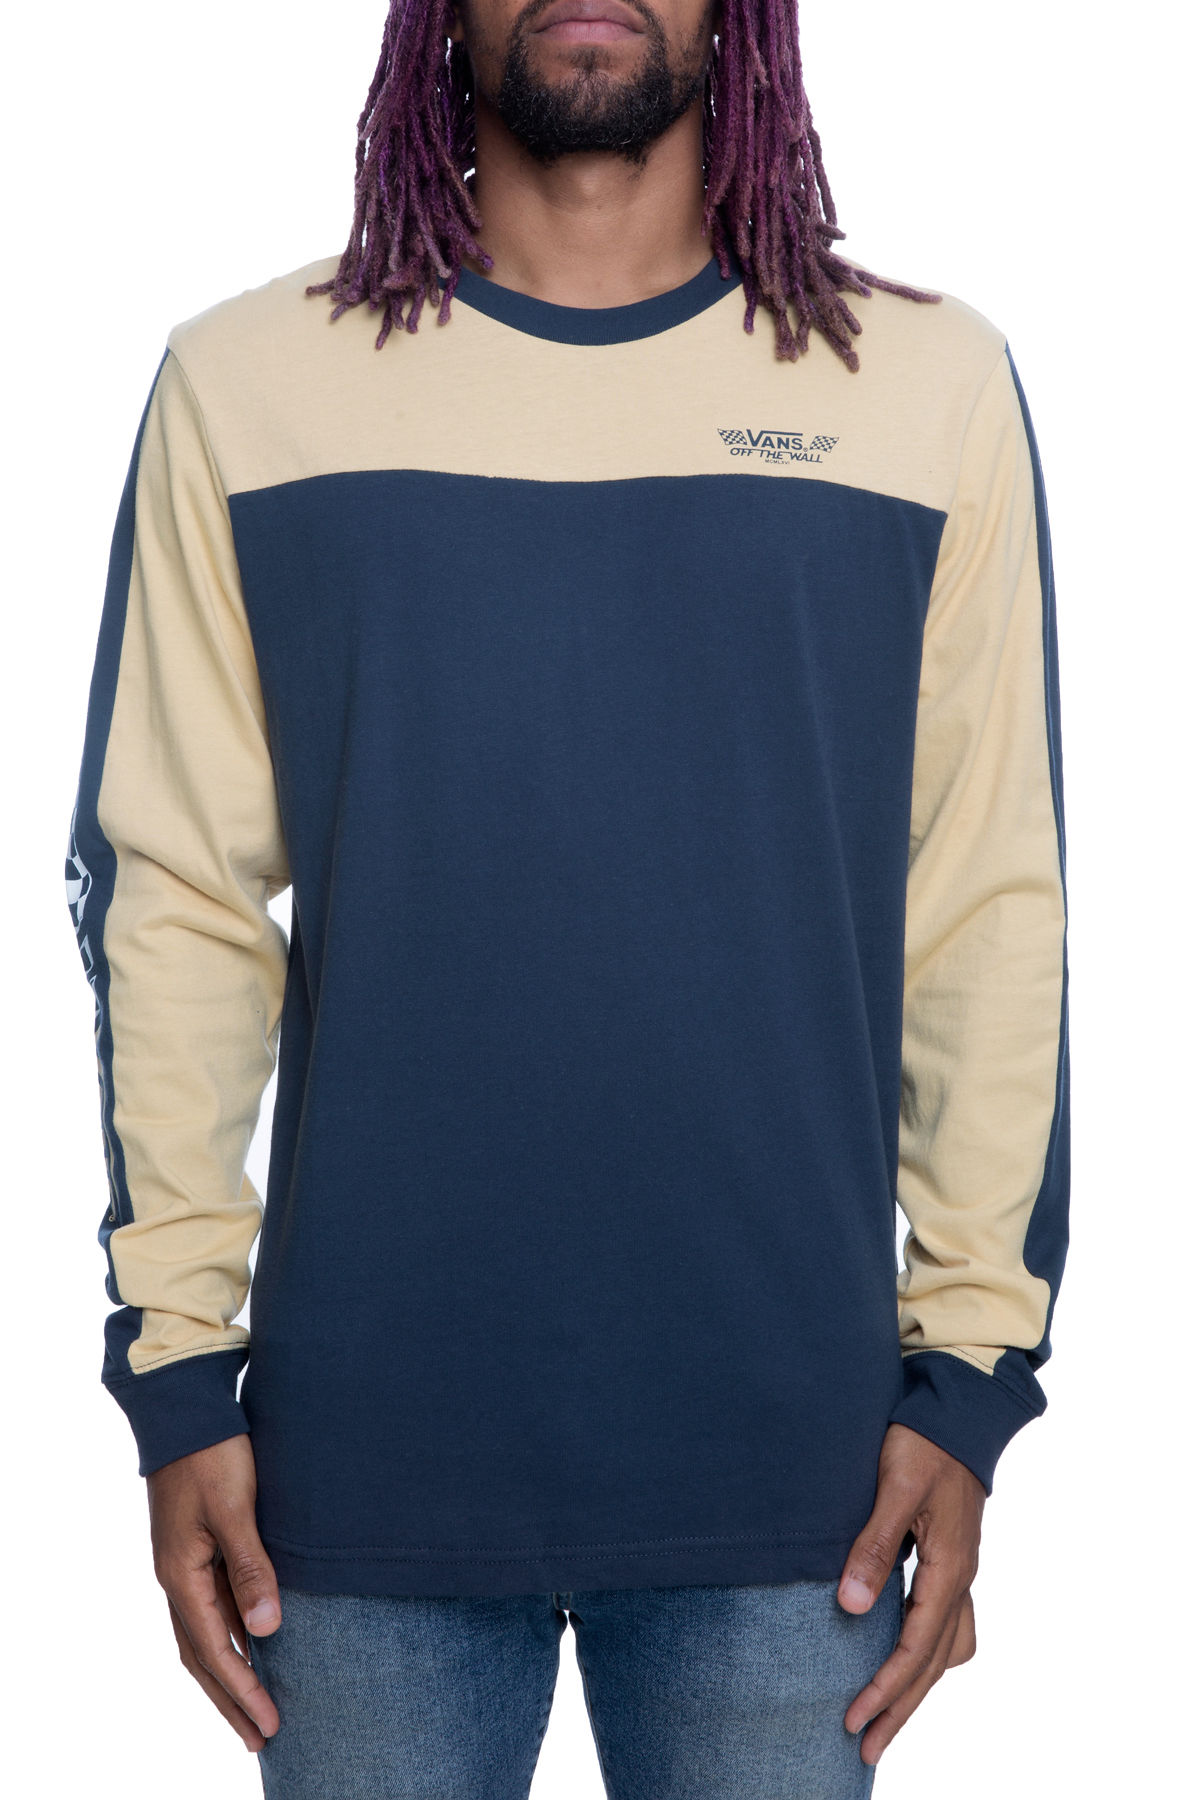 Image of The Crossed Sticks Jersey in Dress Blues